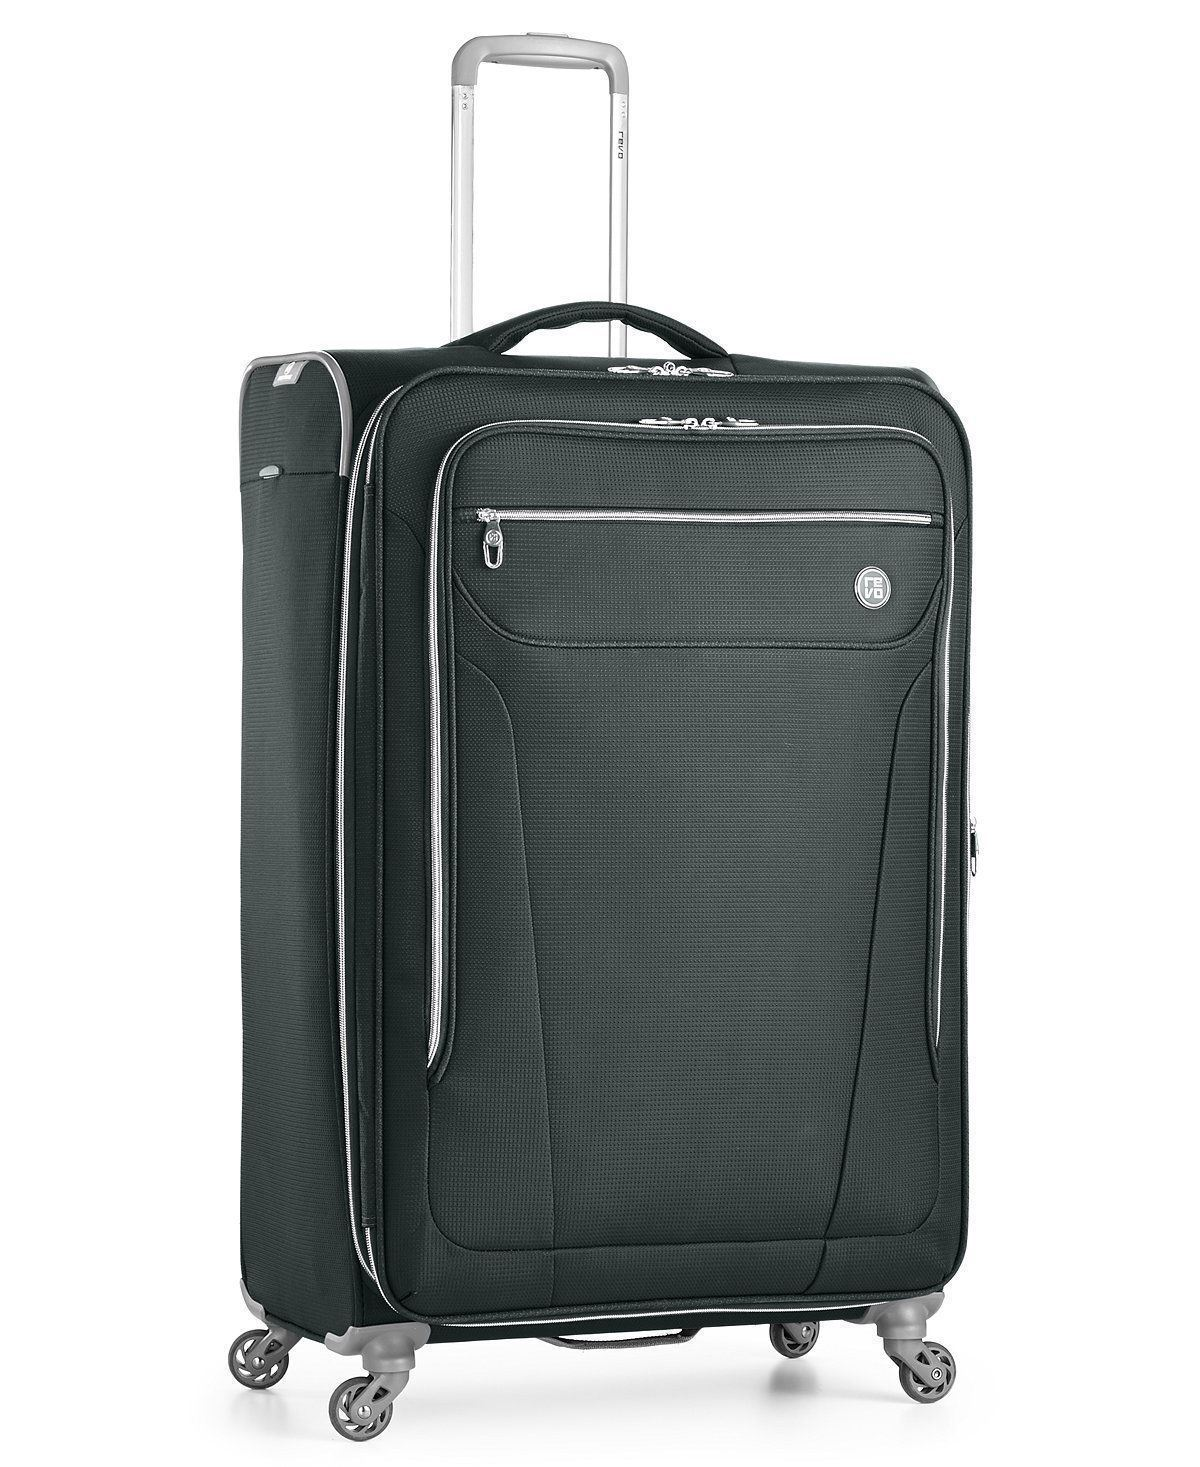 "$260 NEW Revo City Lights 2.0 29"" Spinner Expandable Travel Luggage Suitcase"